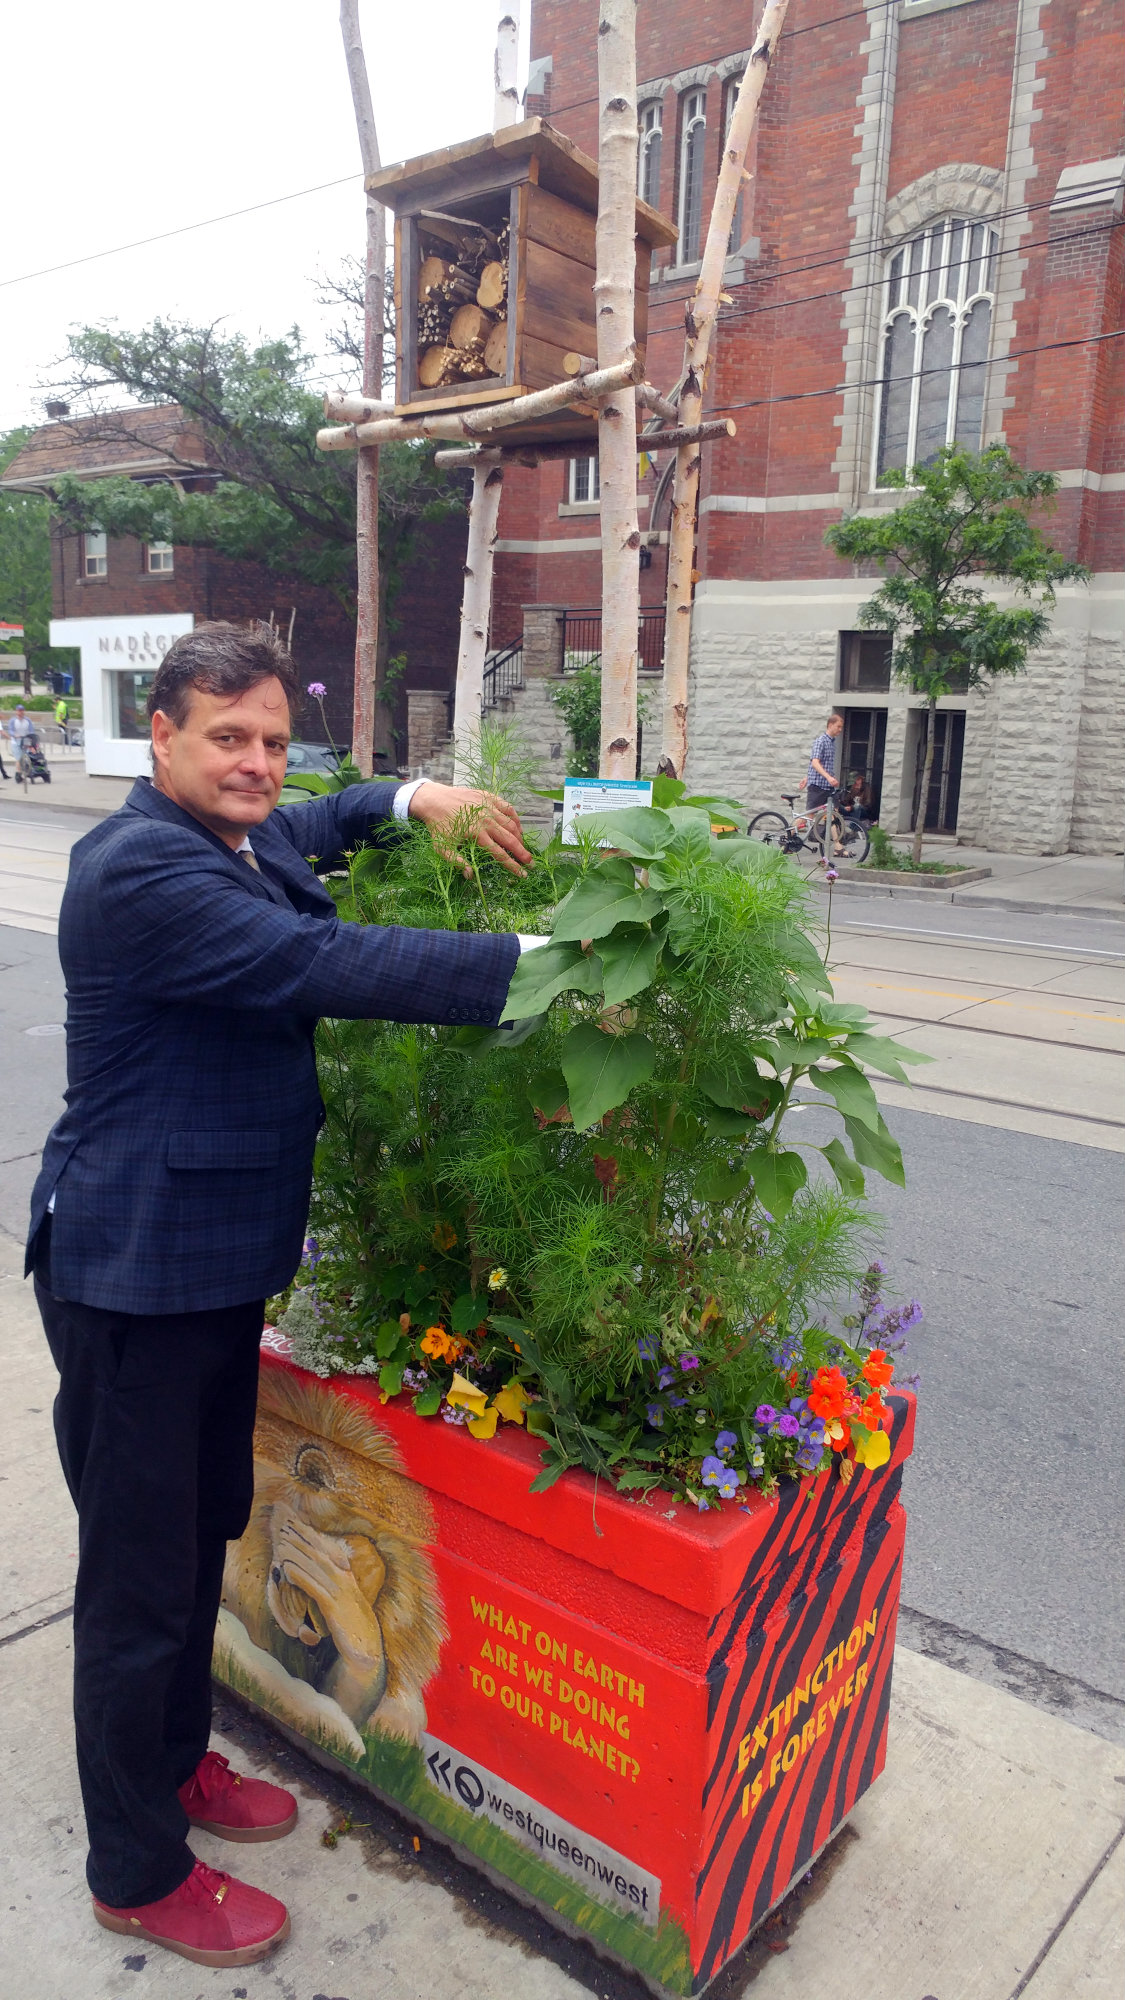 Rob Sysak of WQW BIA told us about the rustic-looking bee hotels installed in several planters.